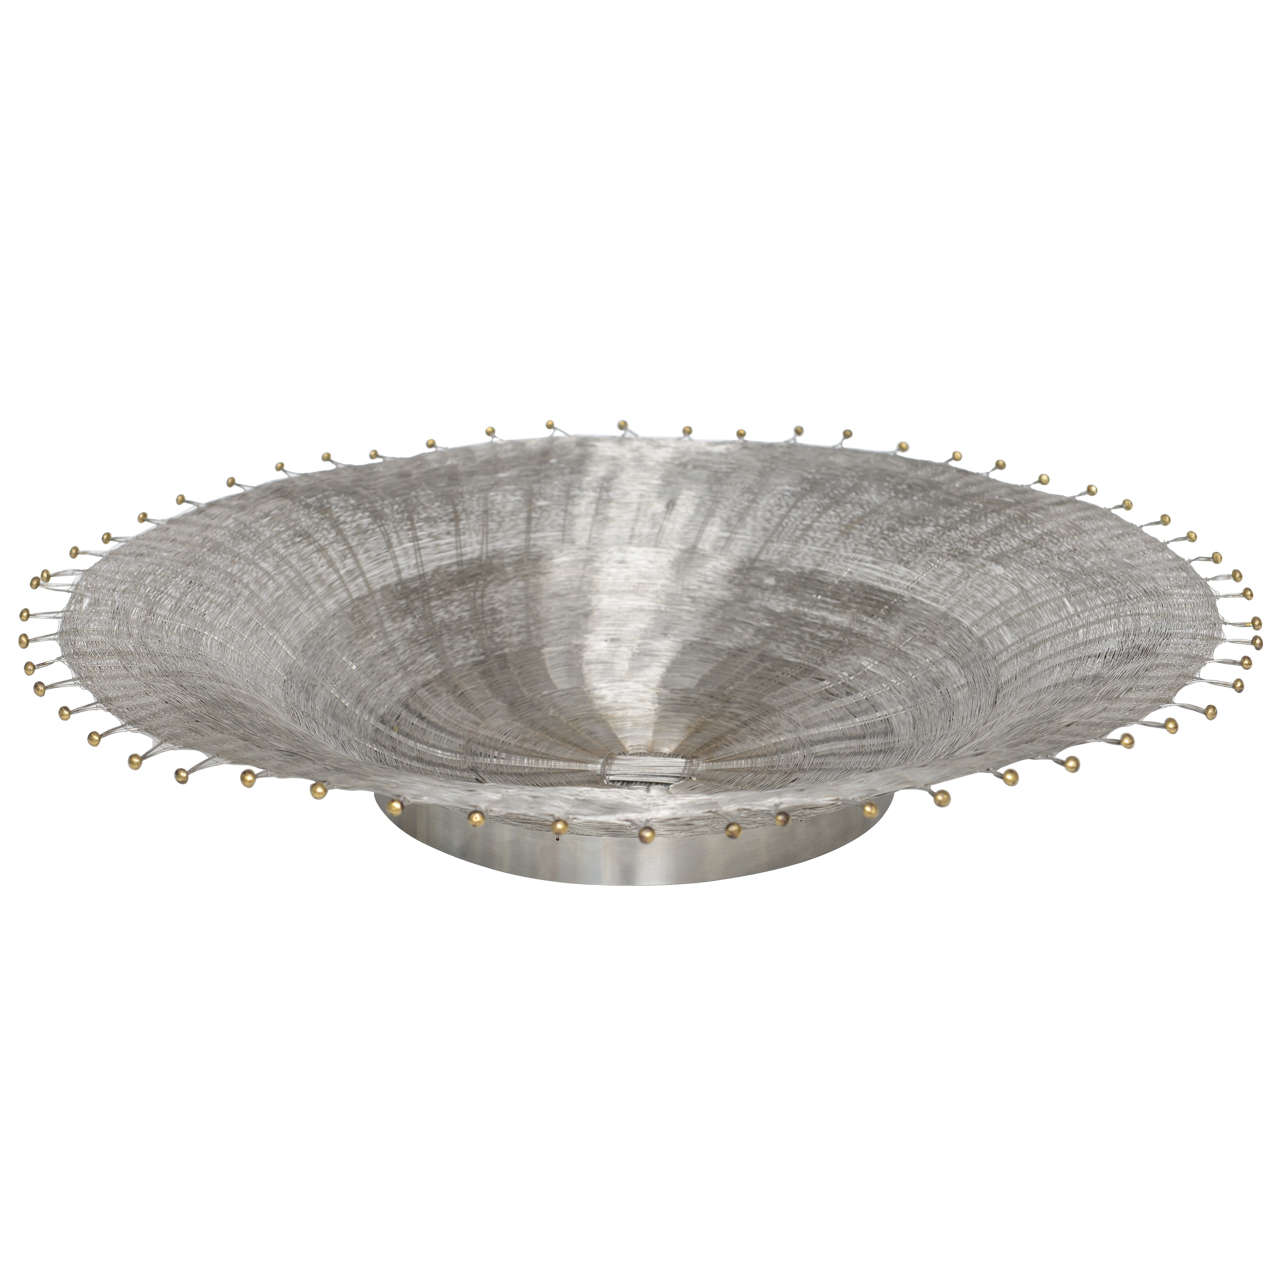 Early Michael Aram Wire Basketweave Bowl At 1stdibs